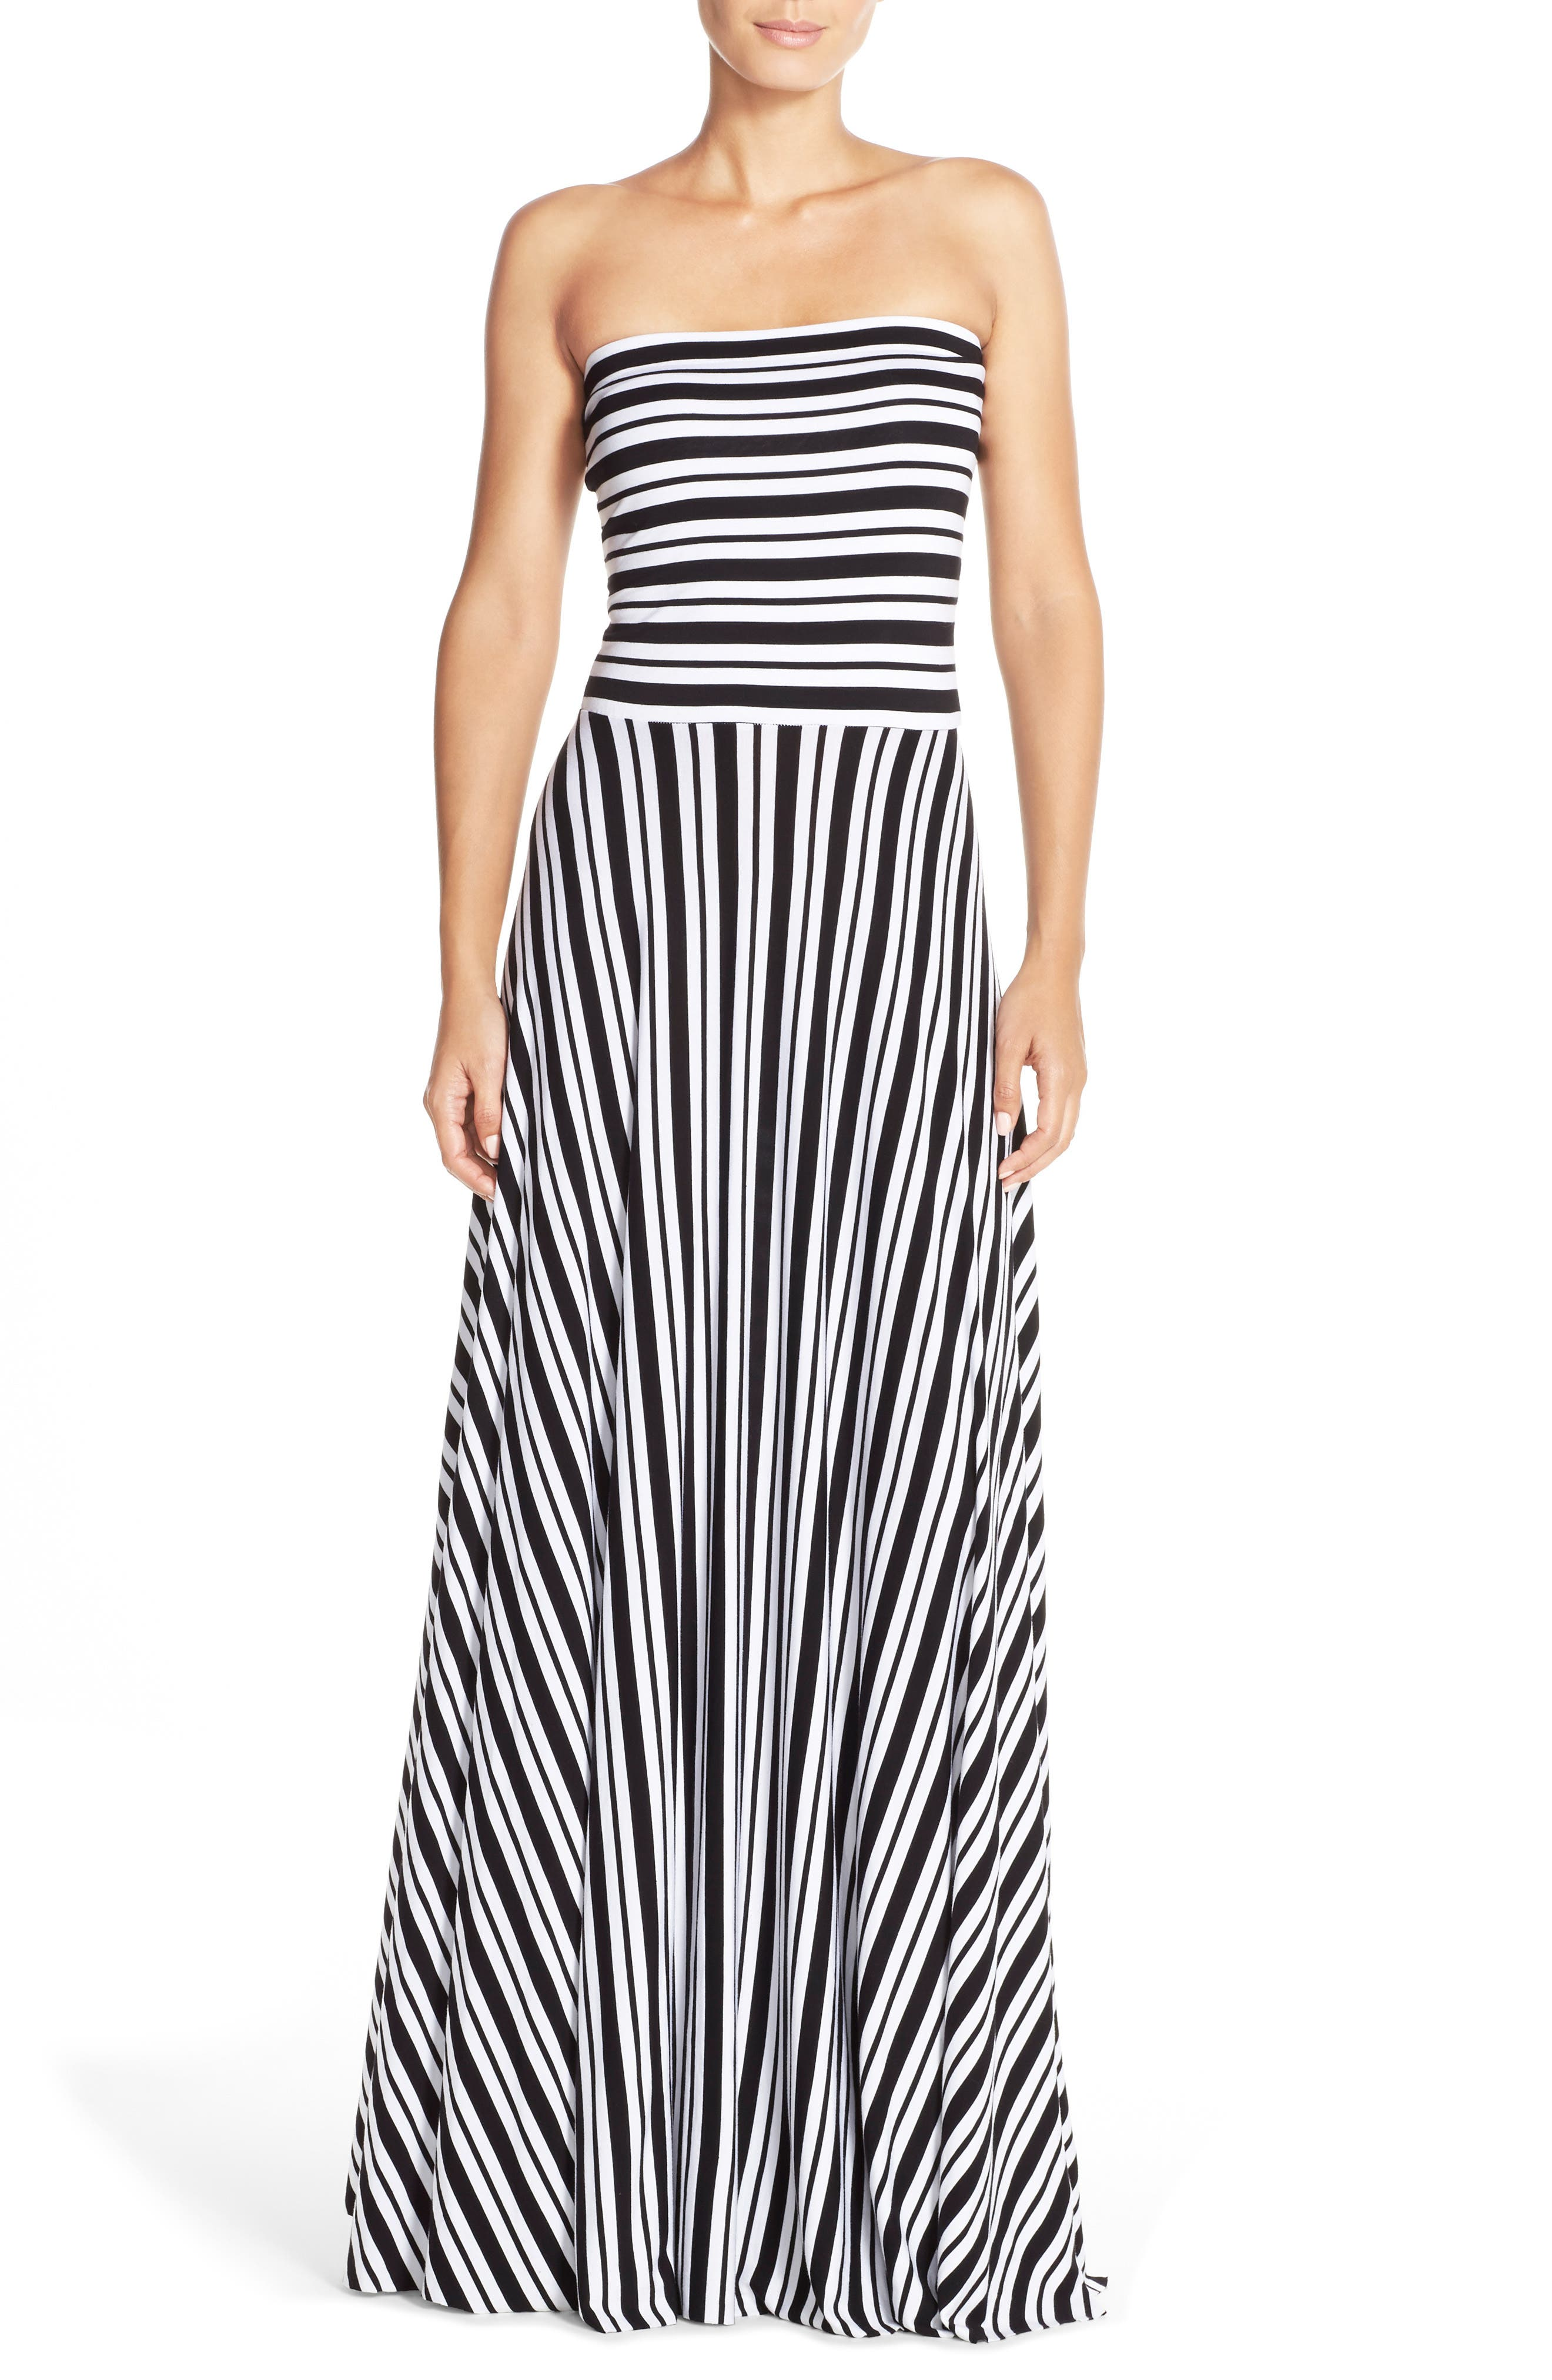 Black and white striped maxi dress h&m locations